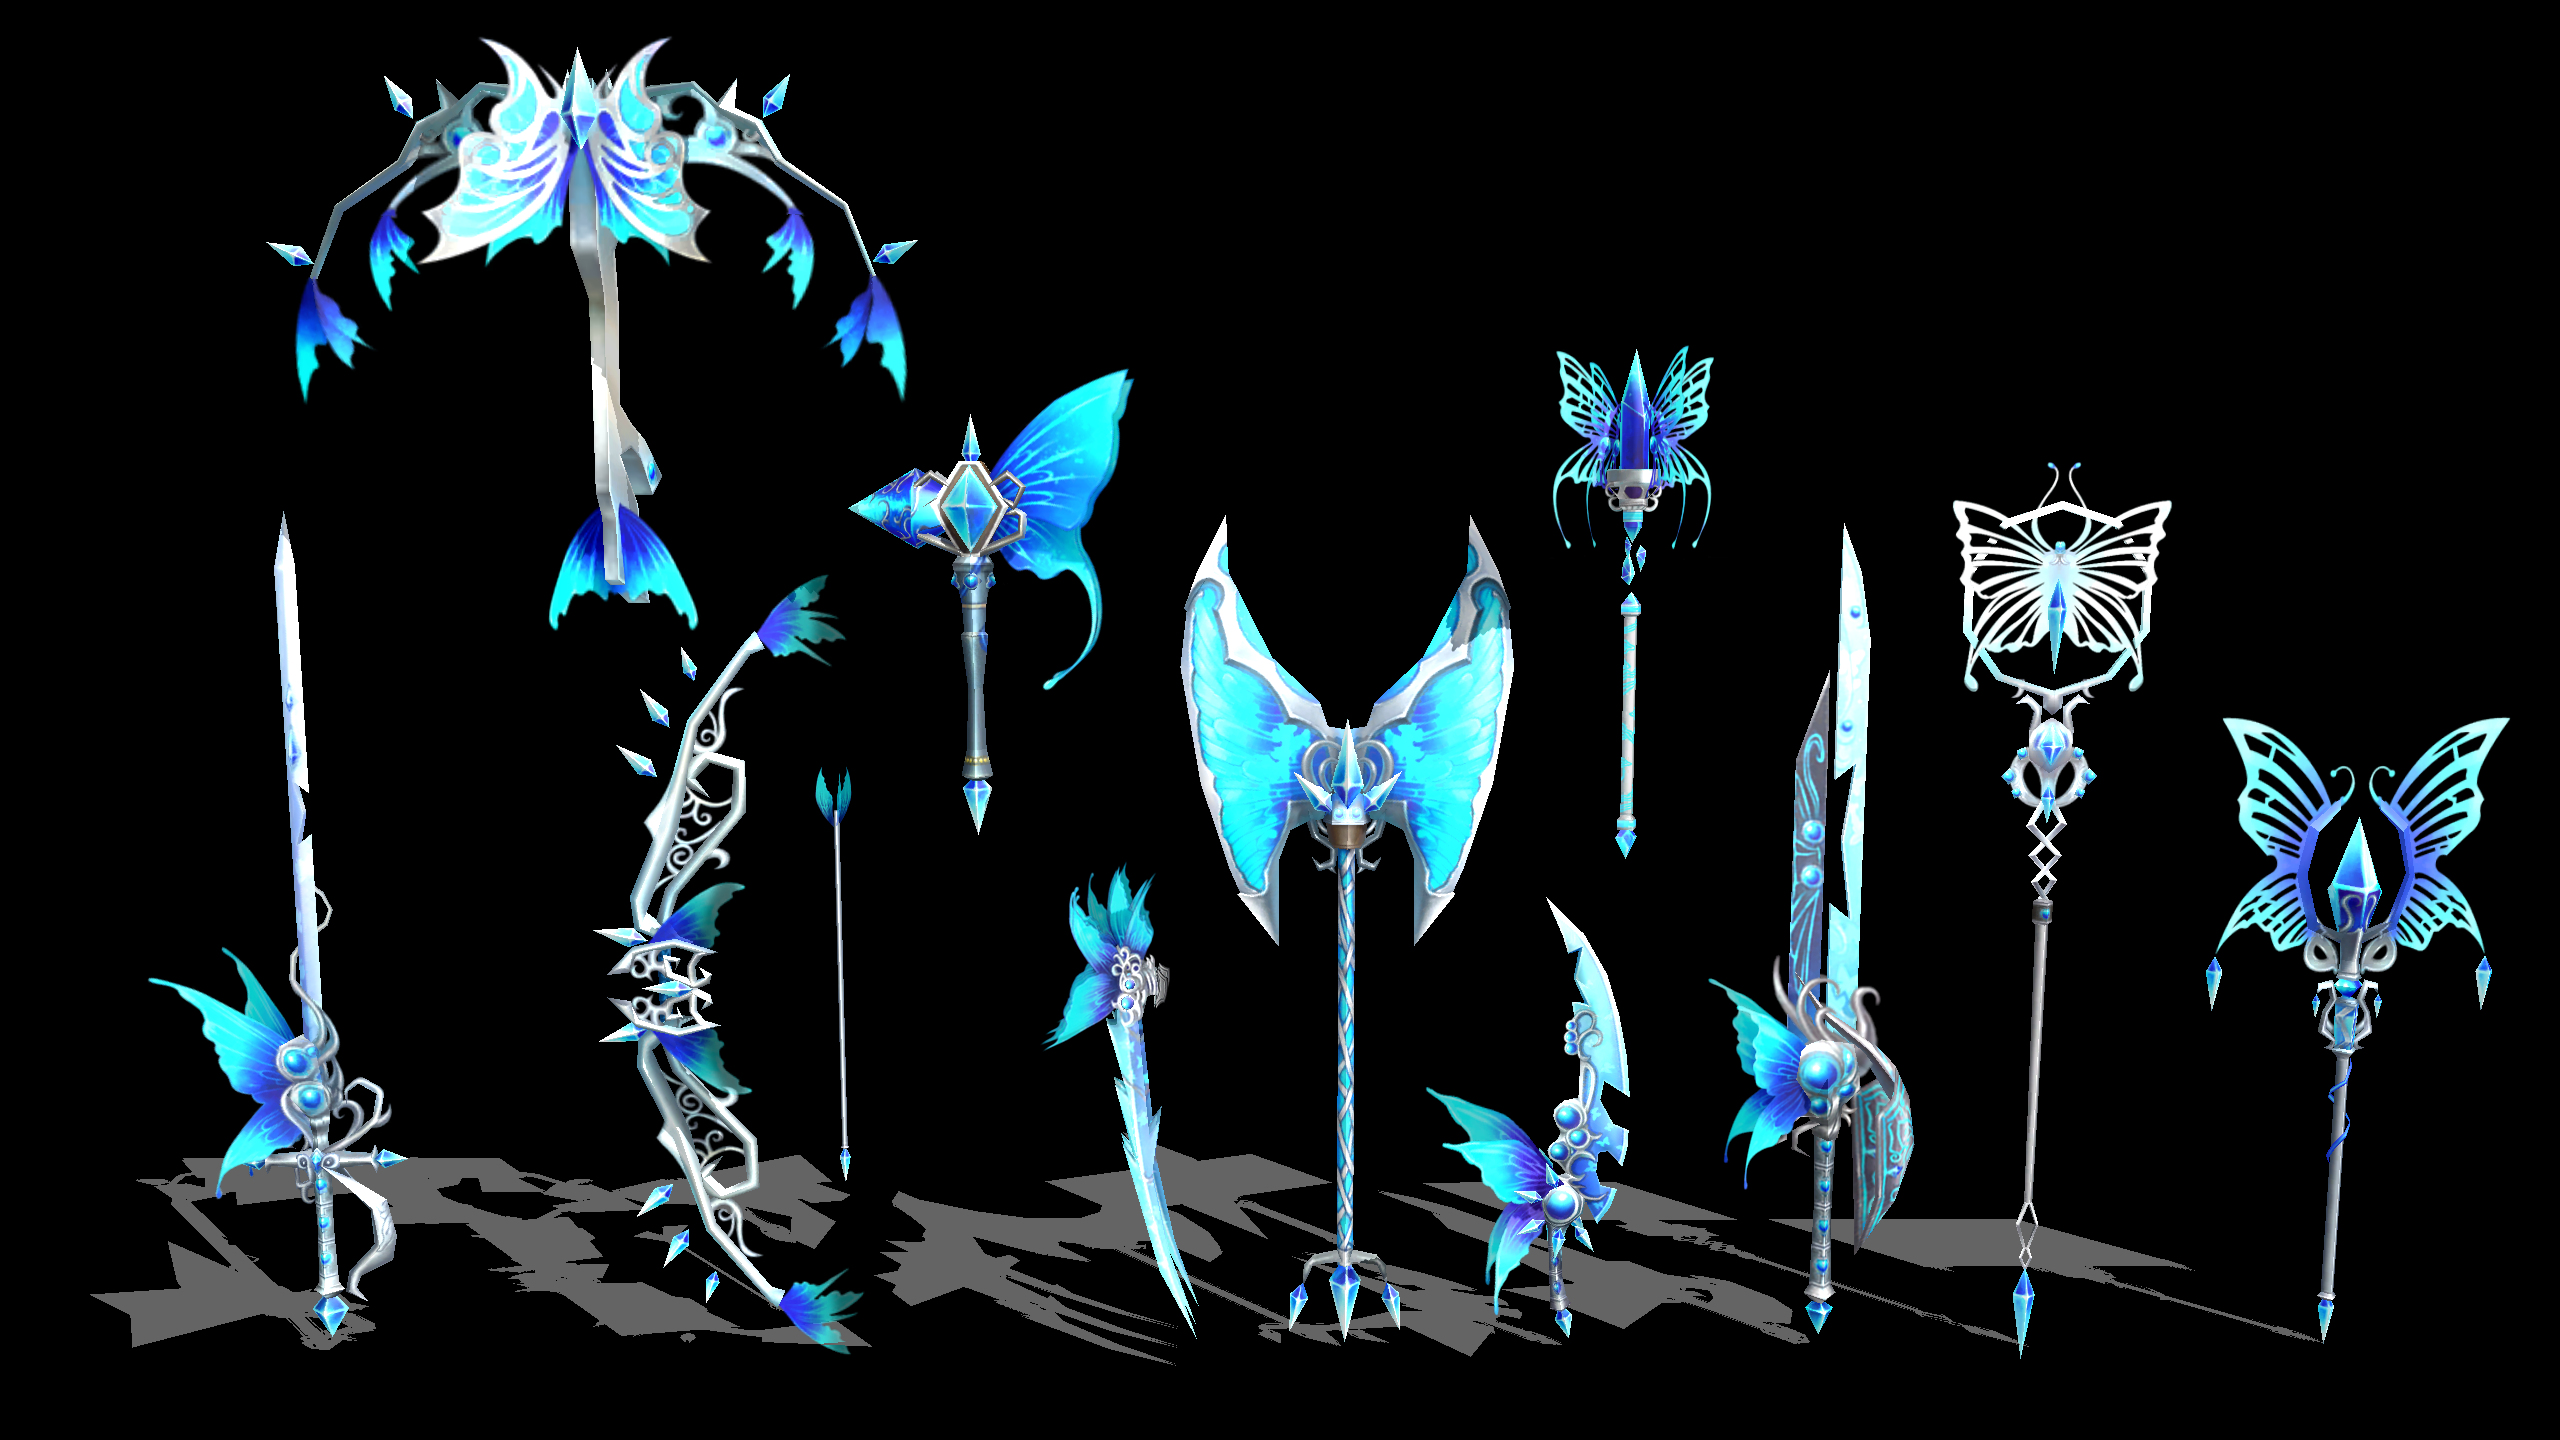 Butterfly weapons download by sirknightthomas on deviantart for Deviantart vrchat avatars